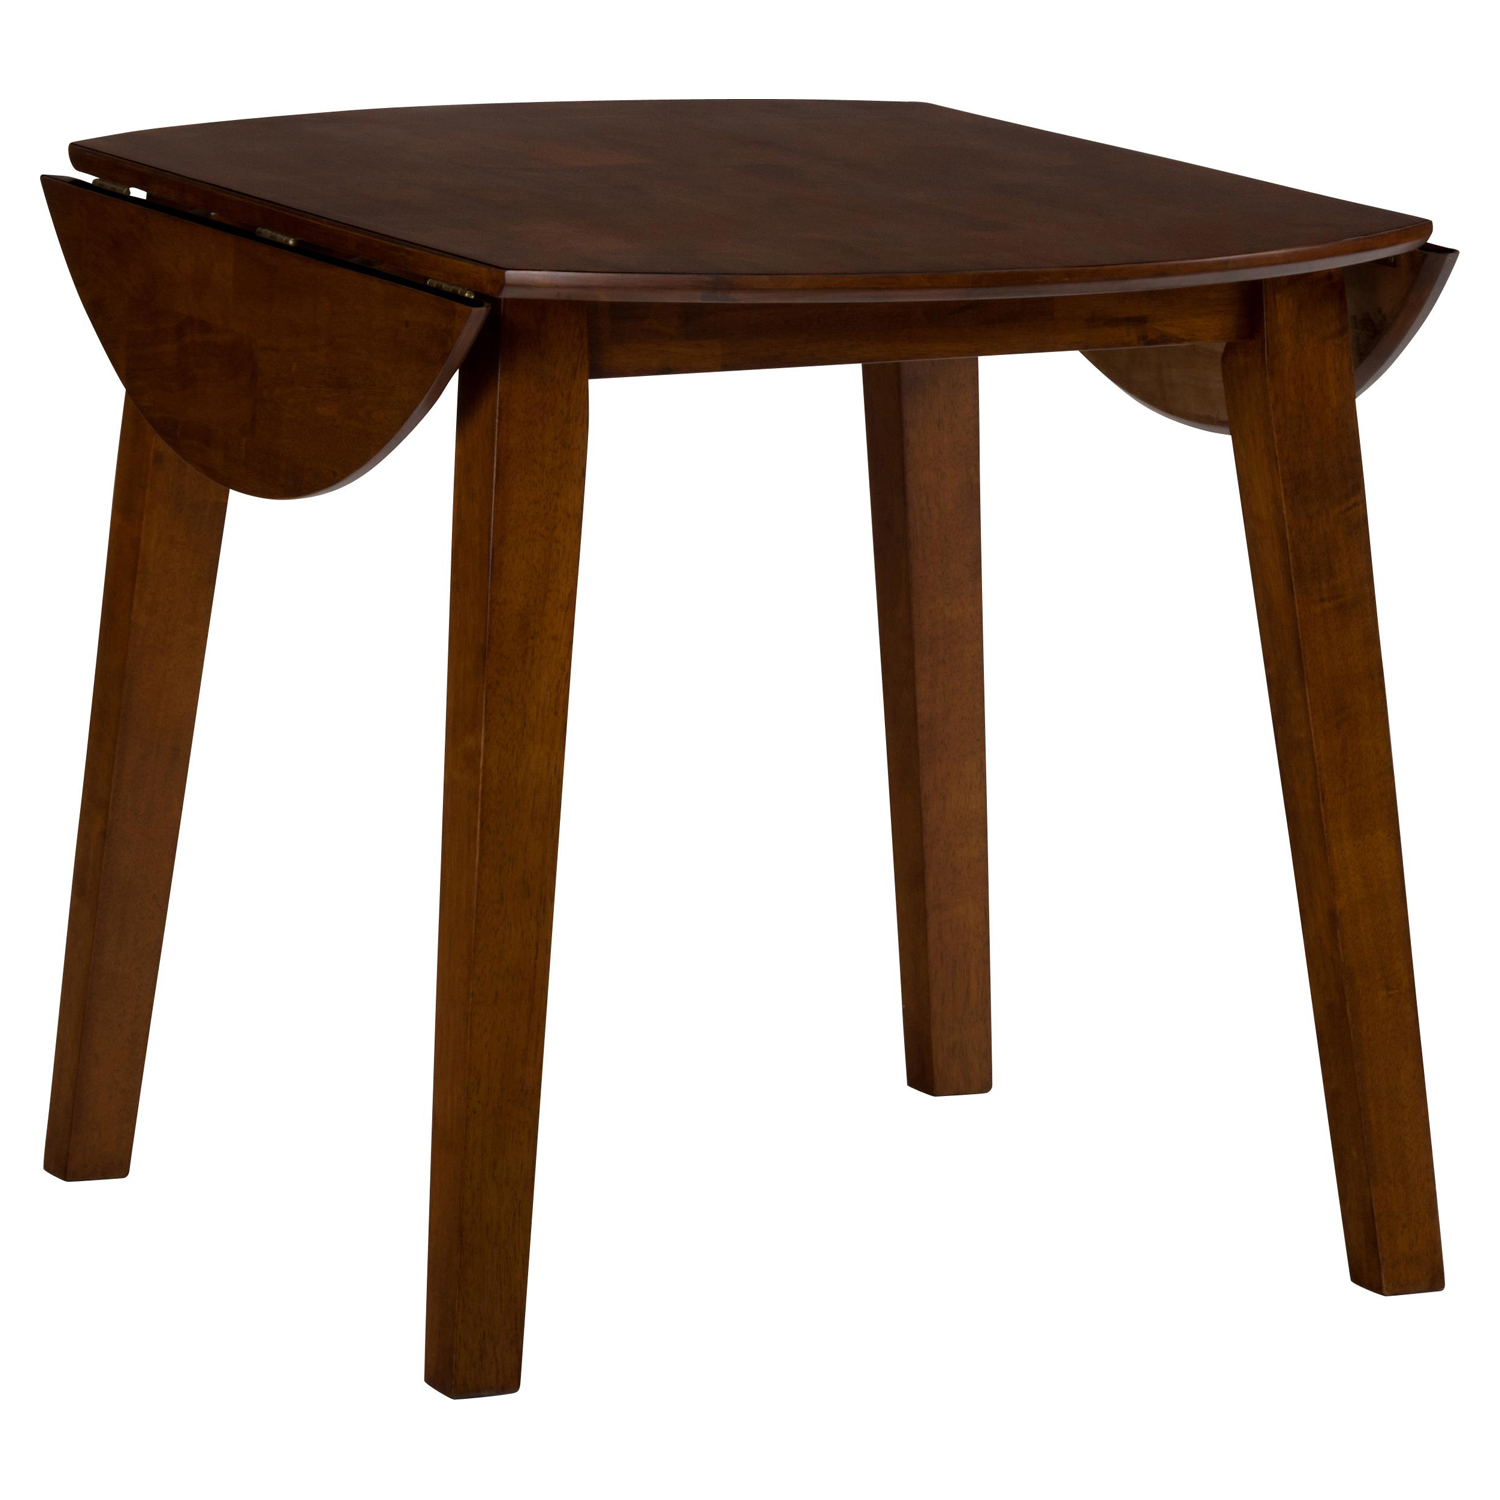 Simplicity Round Drop Leaf Table - Caramel - JOFR-452-28